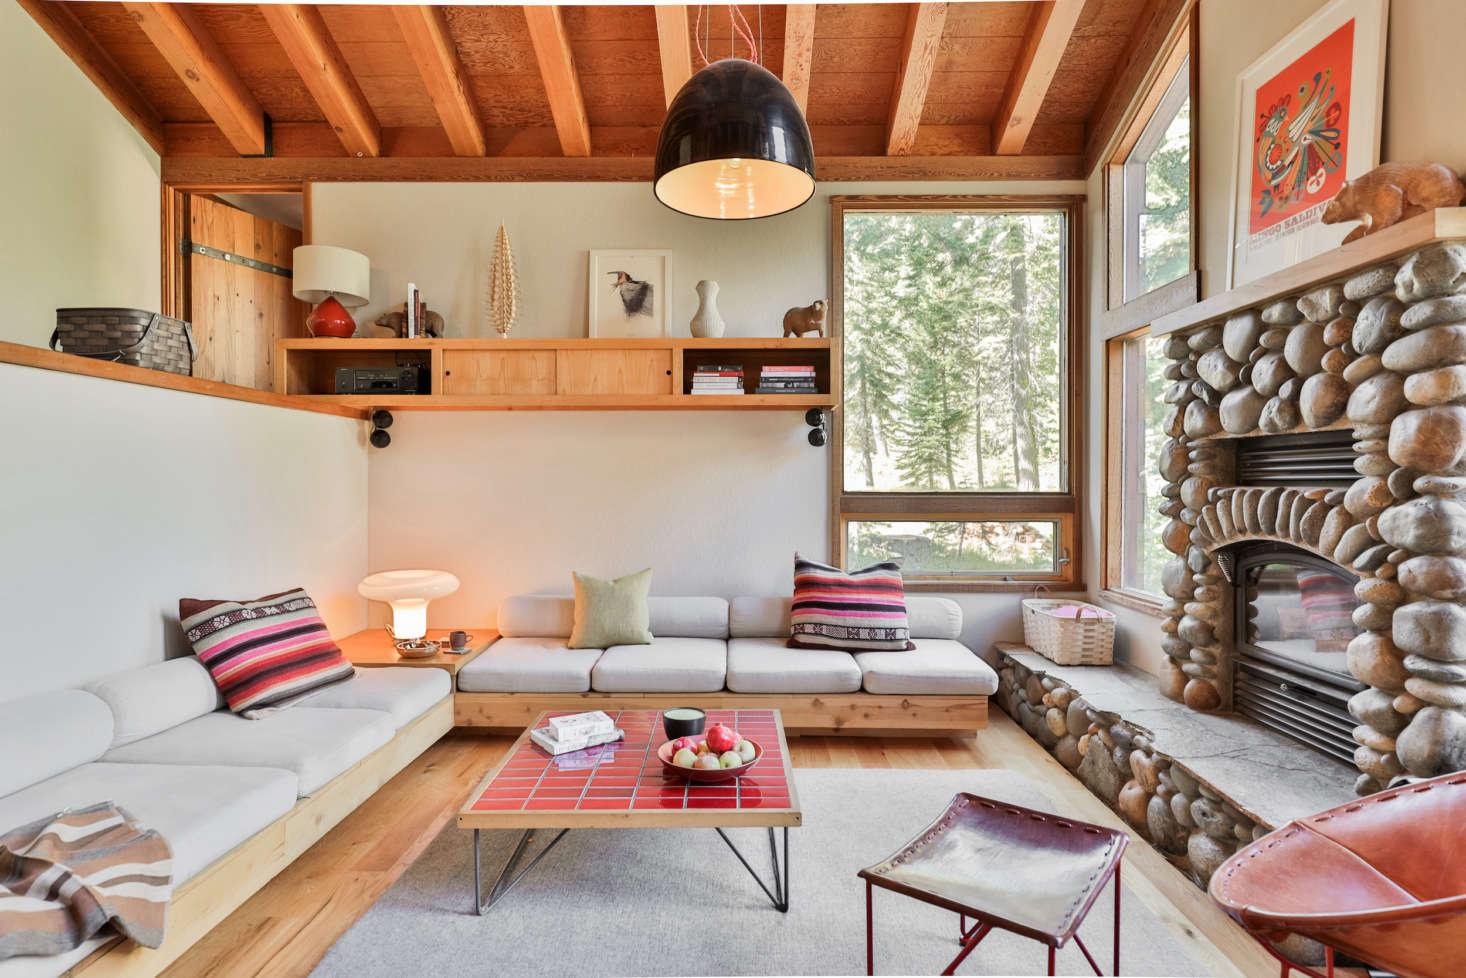 The living room features low-slung seating for gathering around the stone fireplace.